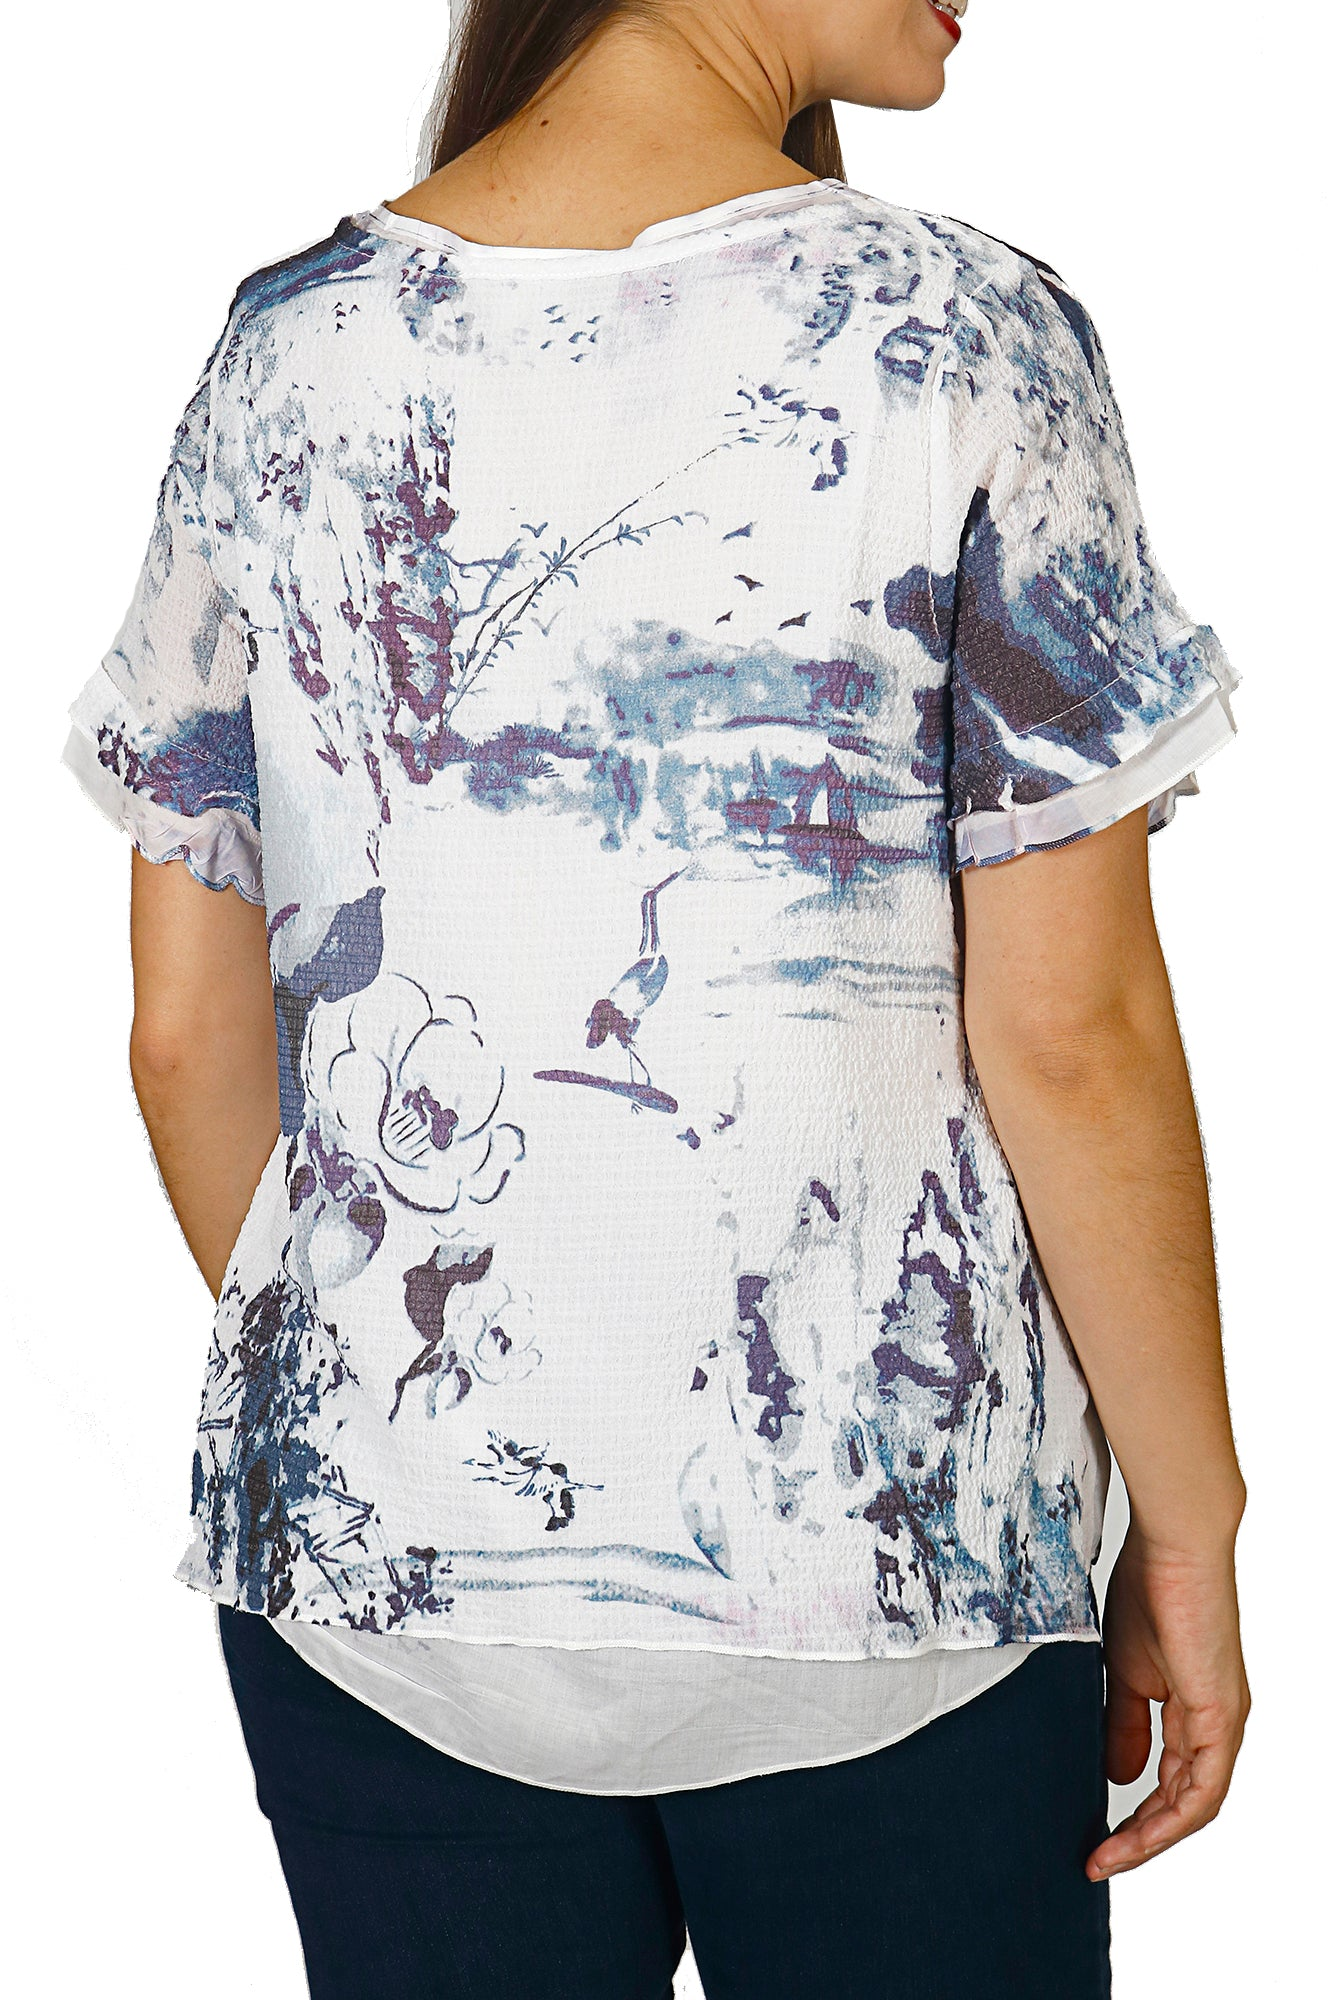 Impulse California Women's 2-layer Printed Top